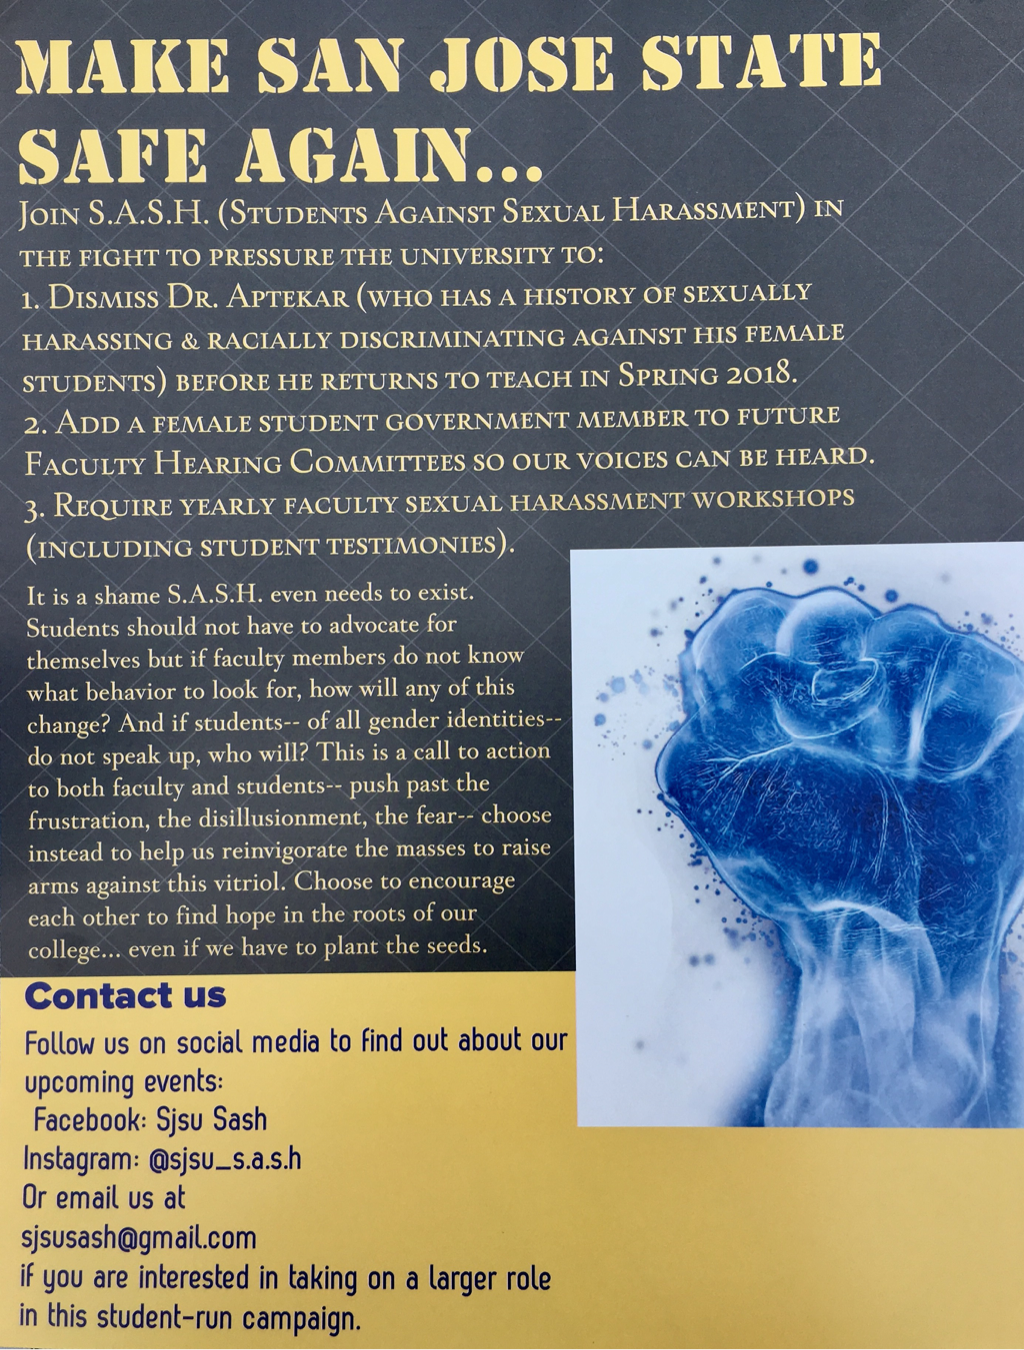 Recruitment flyer for Students Against Sexual Harassment (SASH). Click to enlarge.